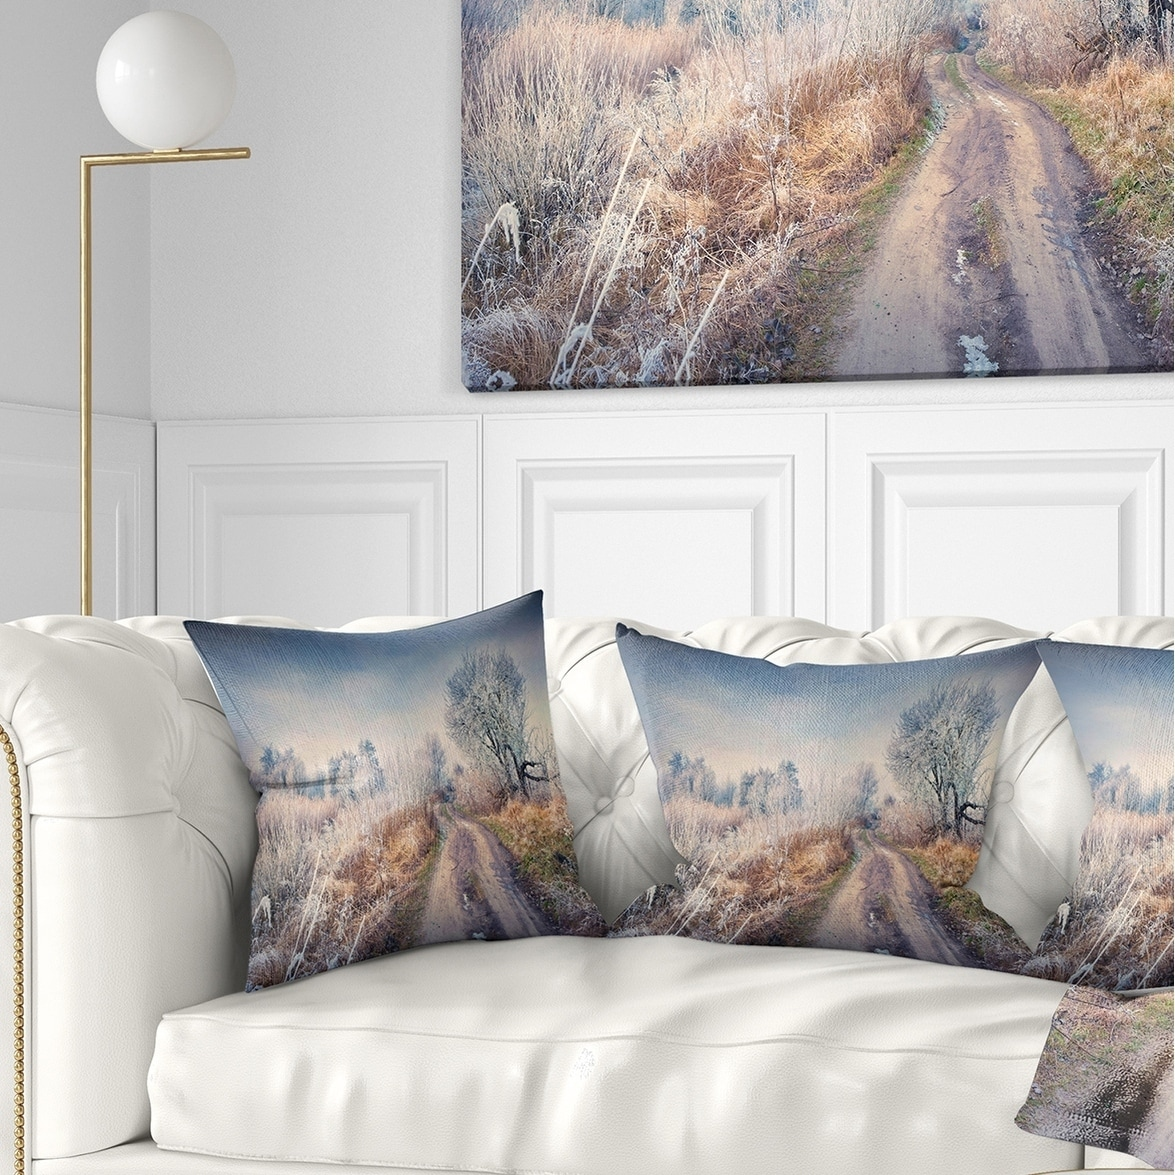 x 20 in in Designart CU9058-12-20 First Frost in Forest Landscape Photography Lumbar Cushion Cover for Living Room Sofa Throw Pillow 12 in